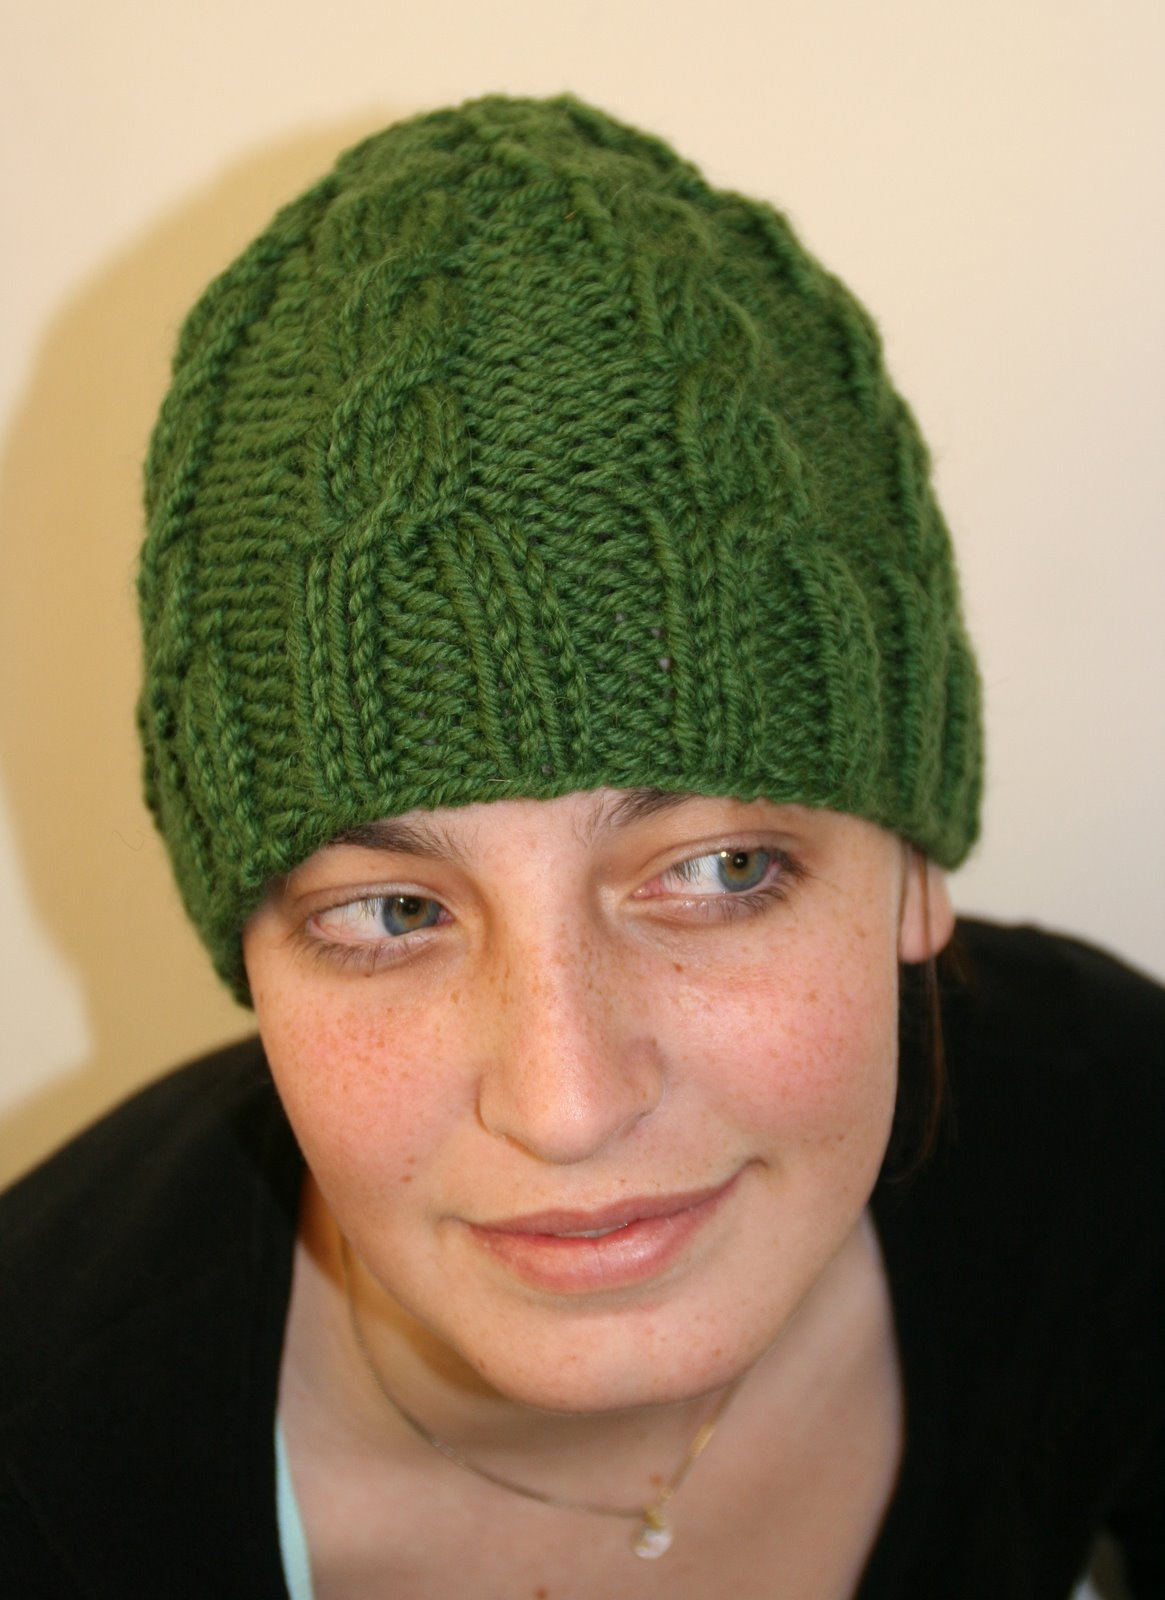 Knitting Patterns Free: new knit hat